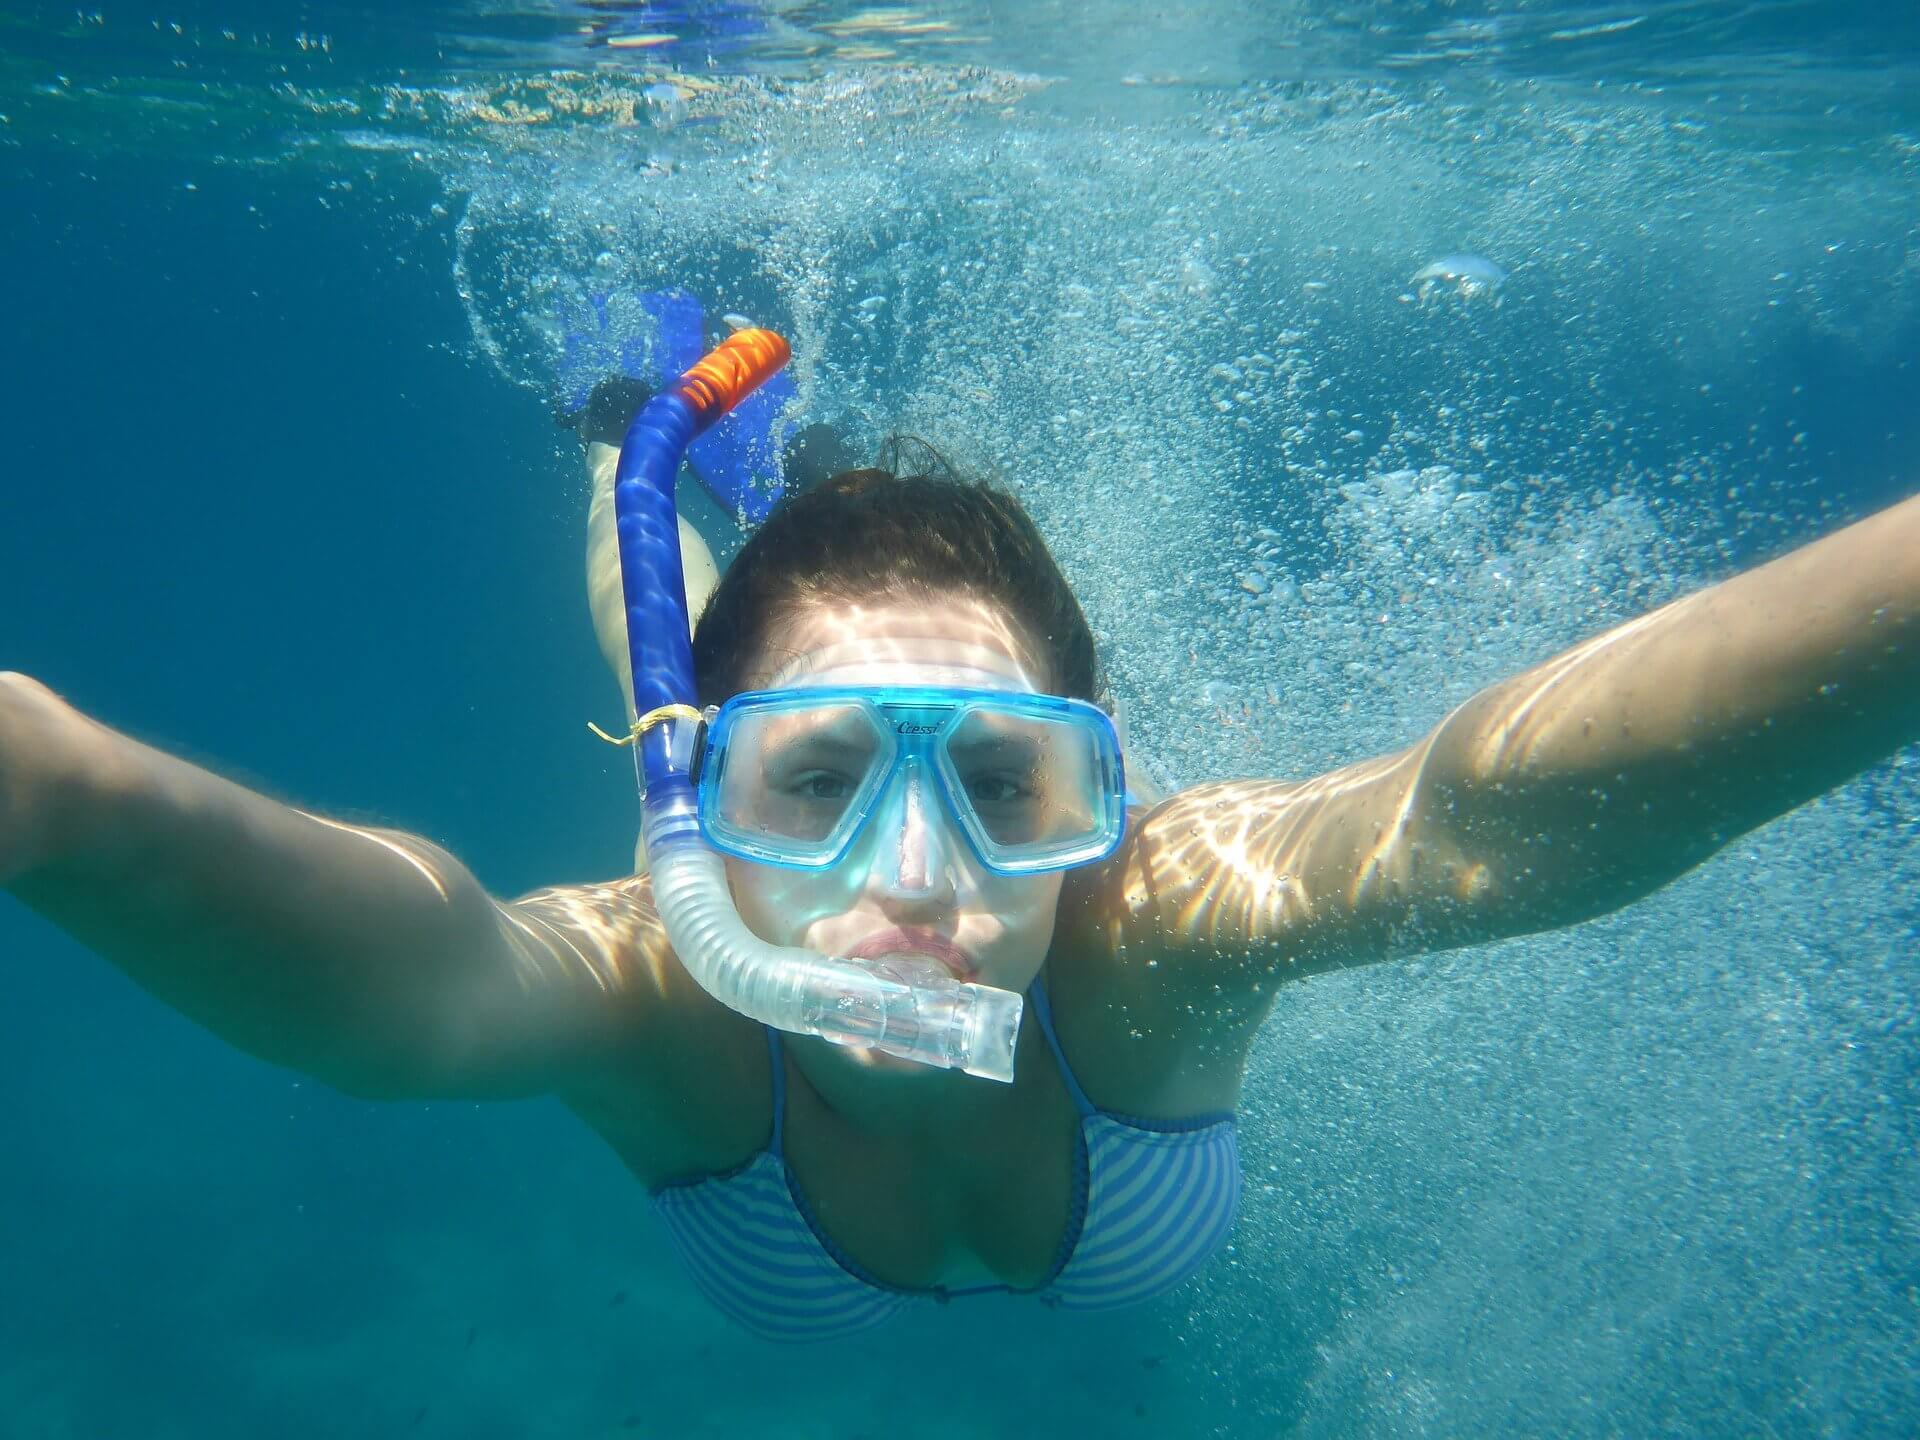 Snorkelling - 1 of the awesome things to do while in Ao Nang